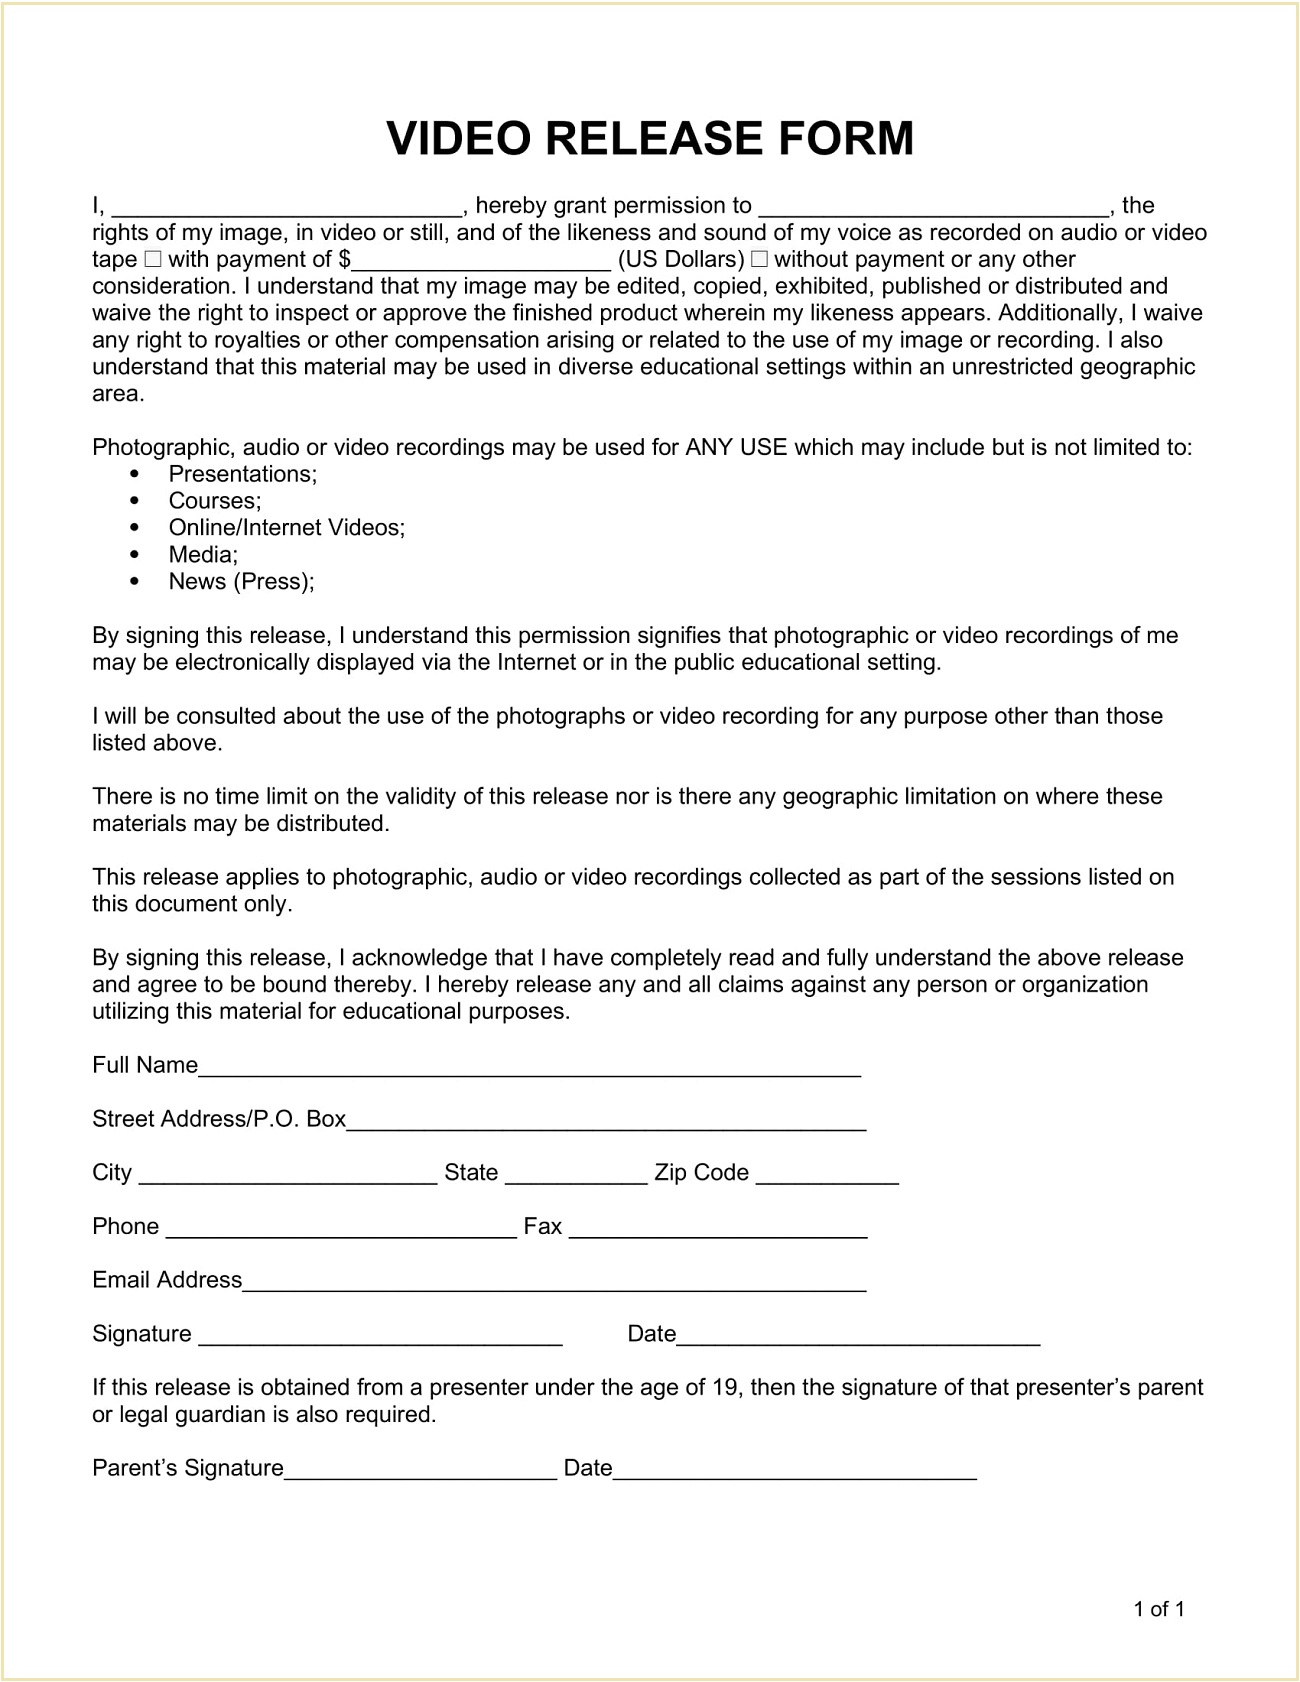 Video Release Form Template Word